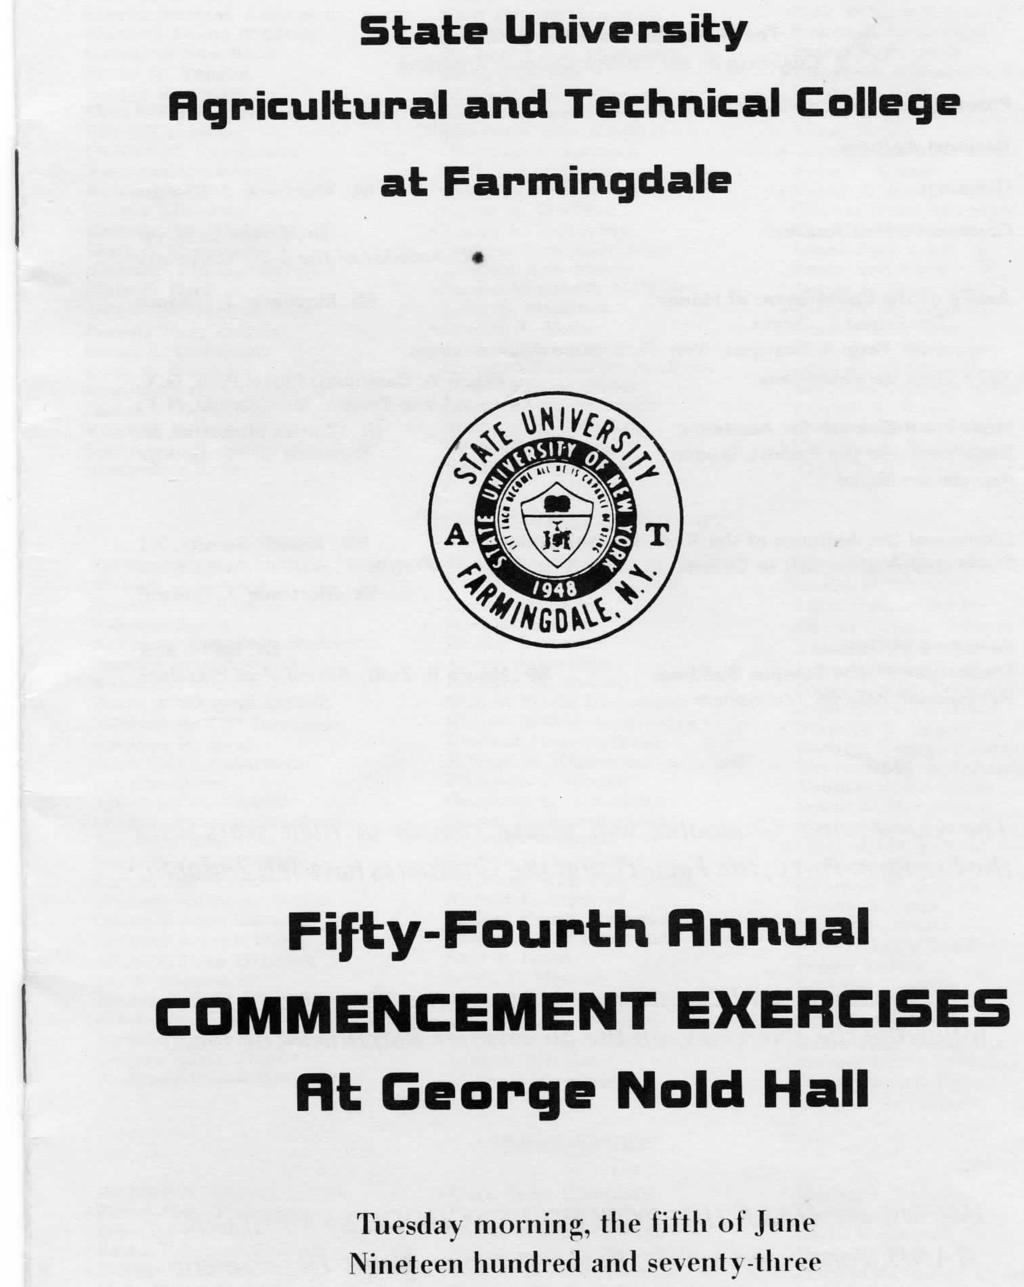 State University Rgricultural and Technical College at Farmingdale Fifty-Fourth Rnnual COMMENCEMENT